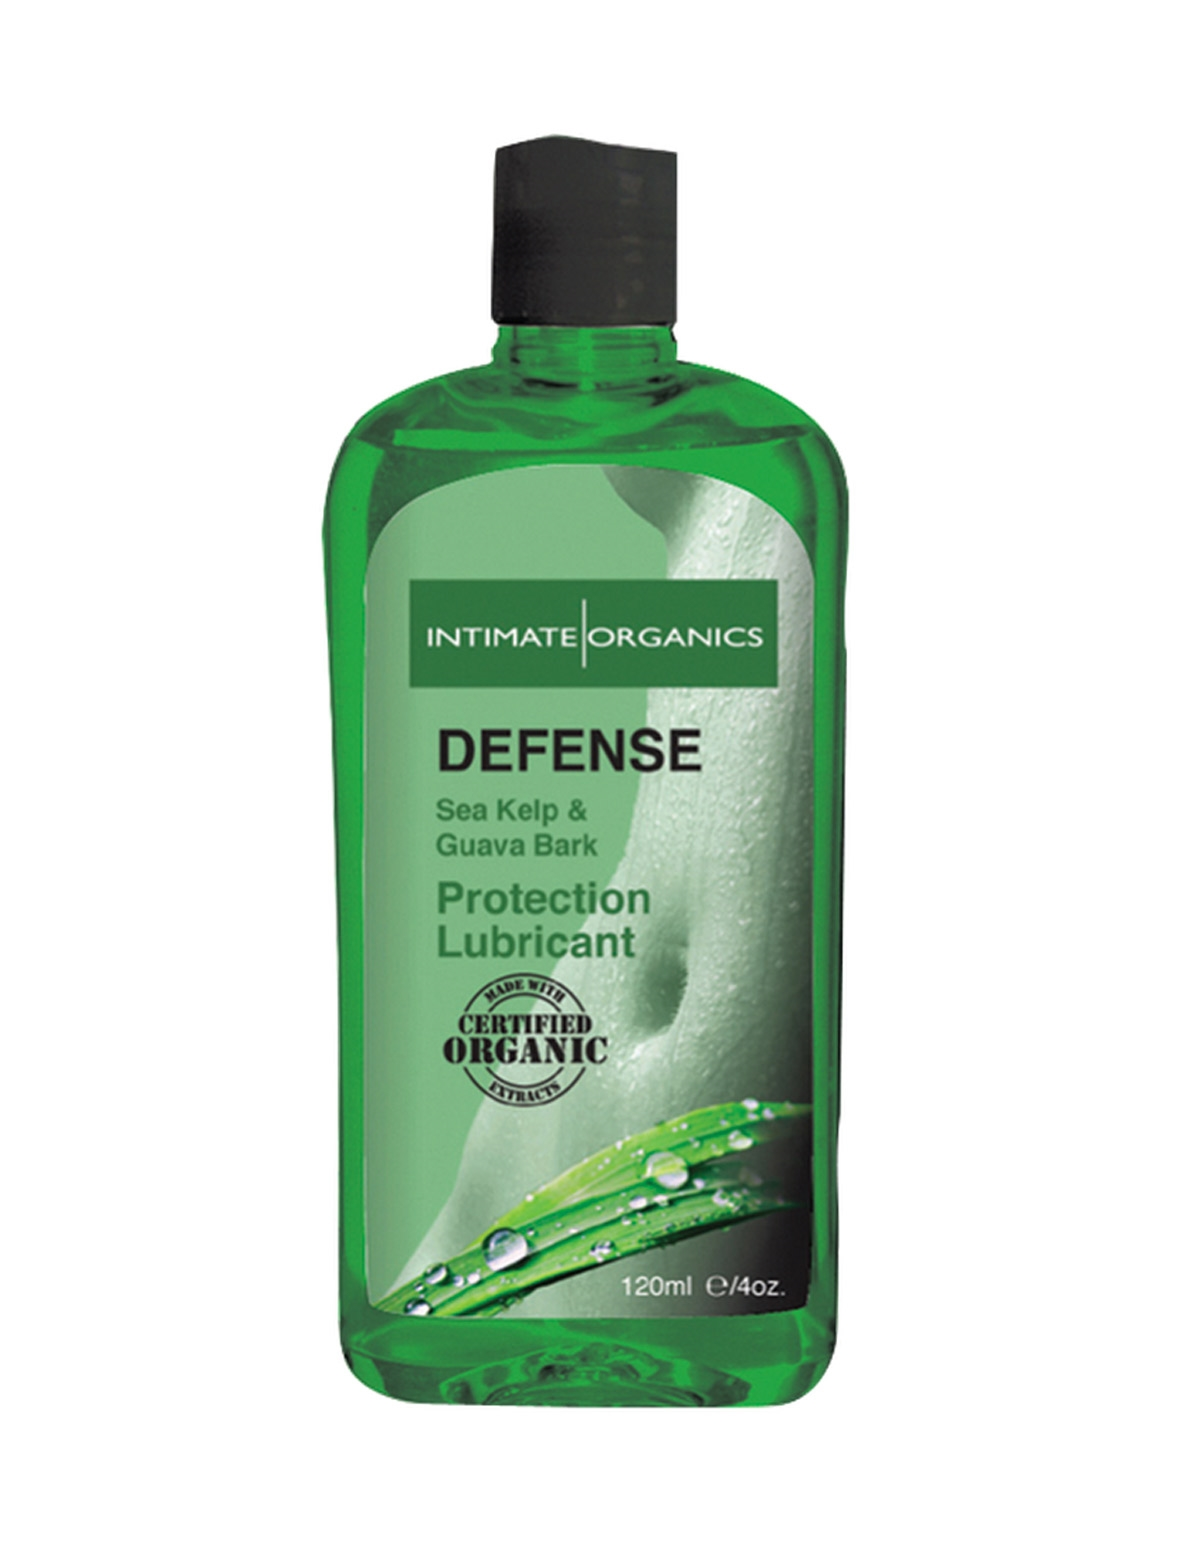 Defense Anti-Bacterial Lubricant